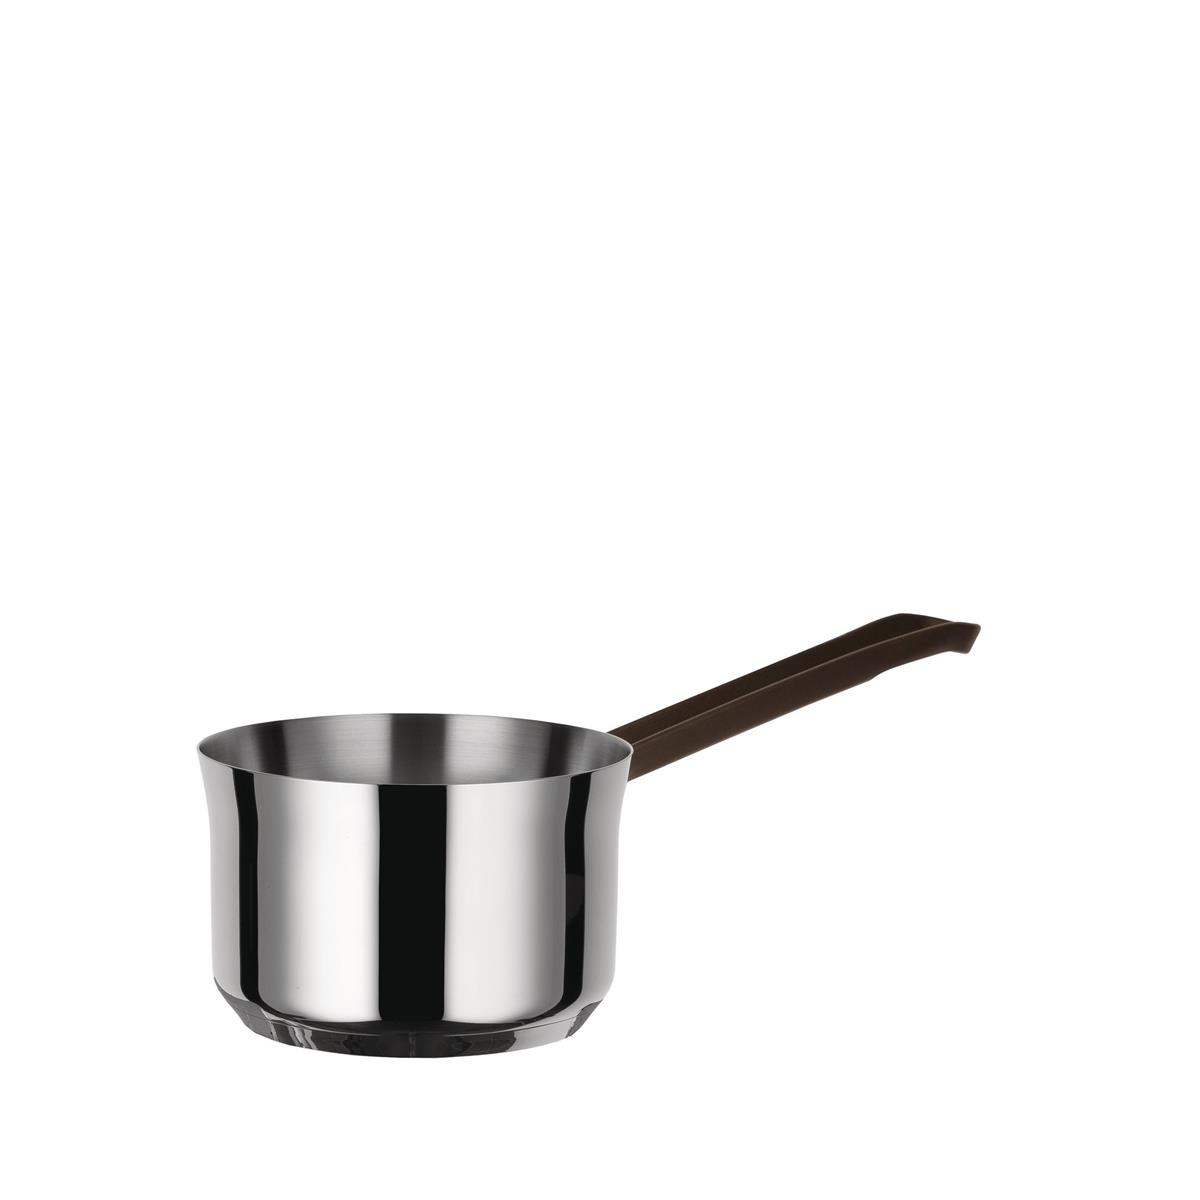 Alessi-edo Casserole with long handle in 18/10 stainless steel suitable for induction